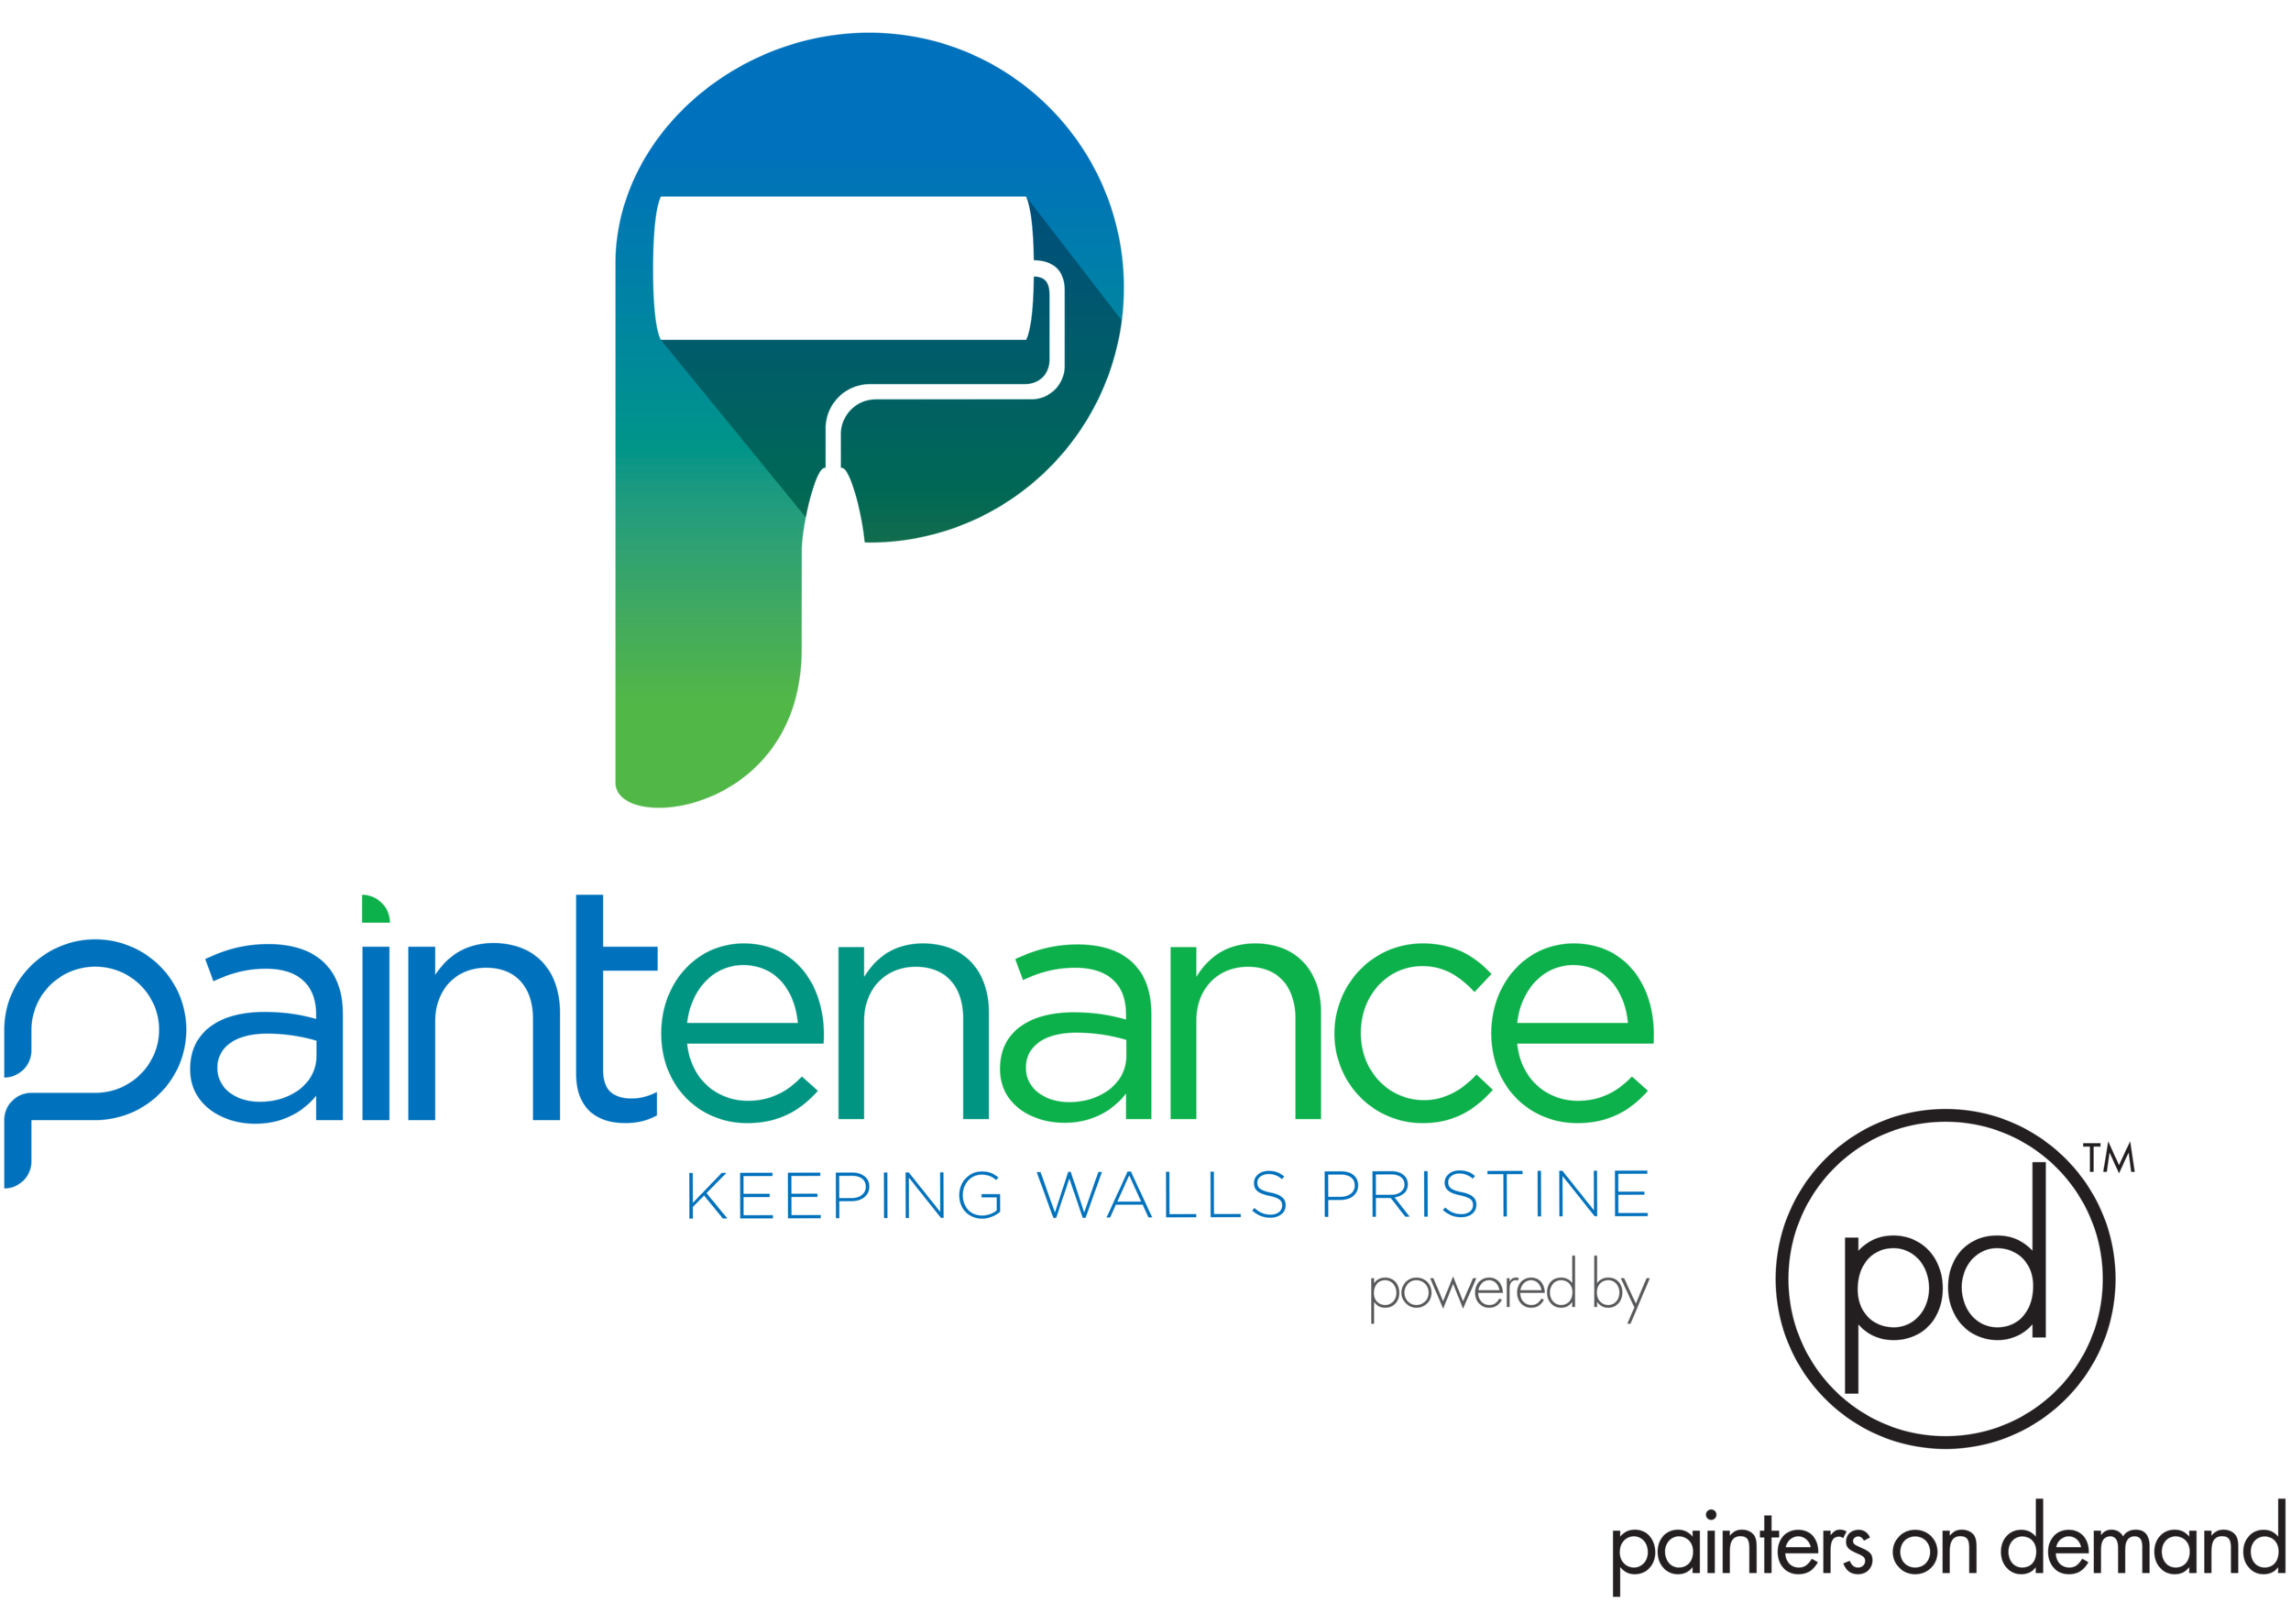 Paintenance Powered by Decal.png